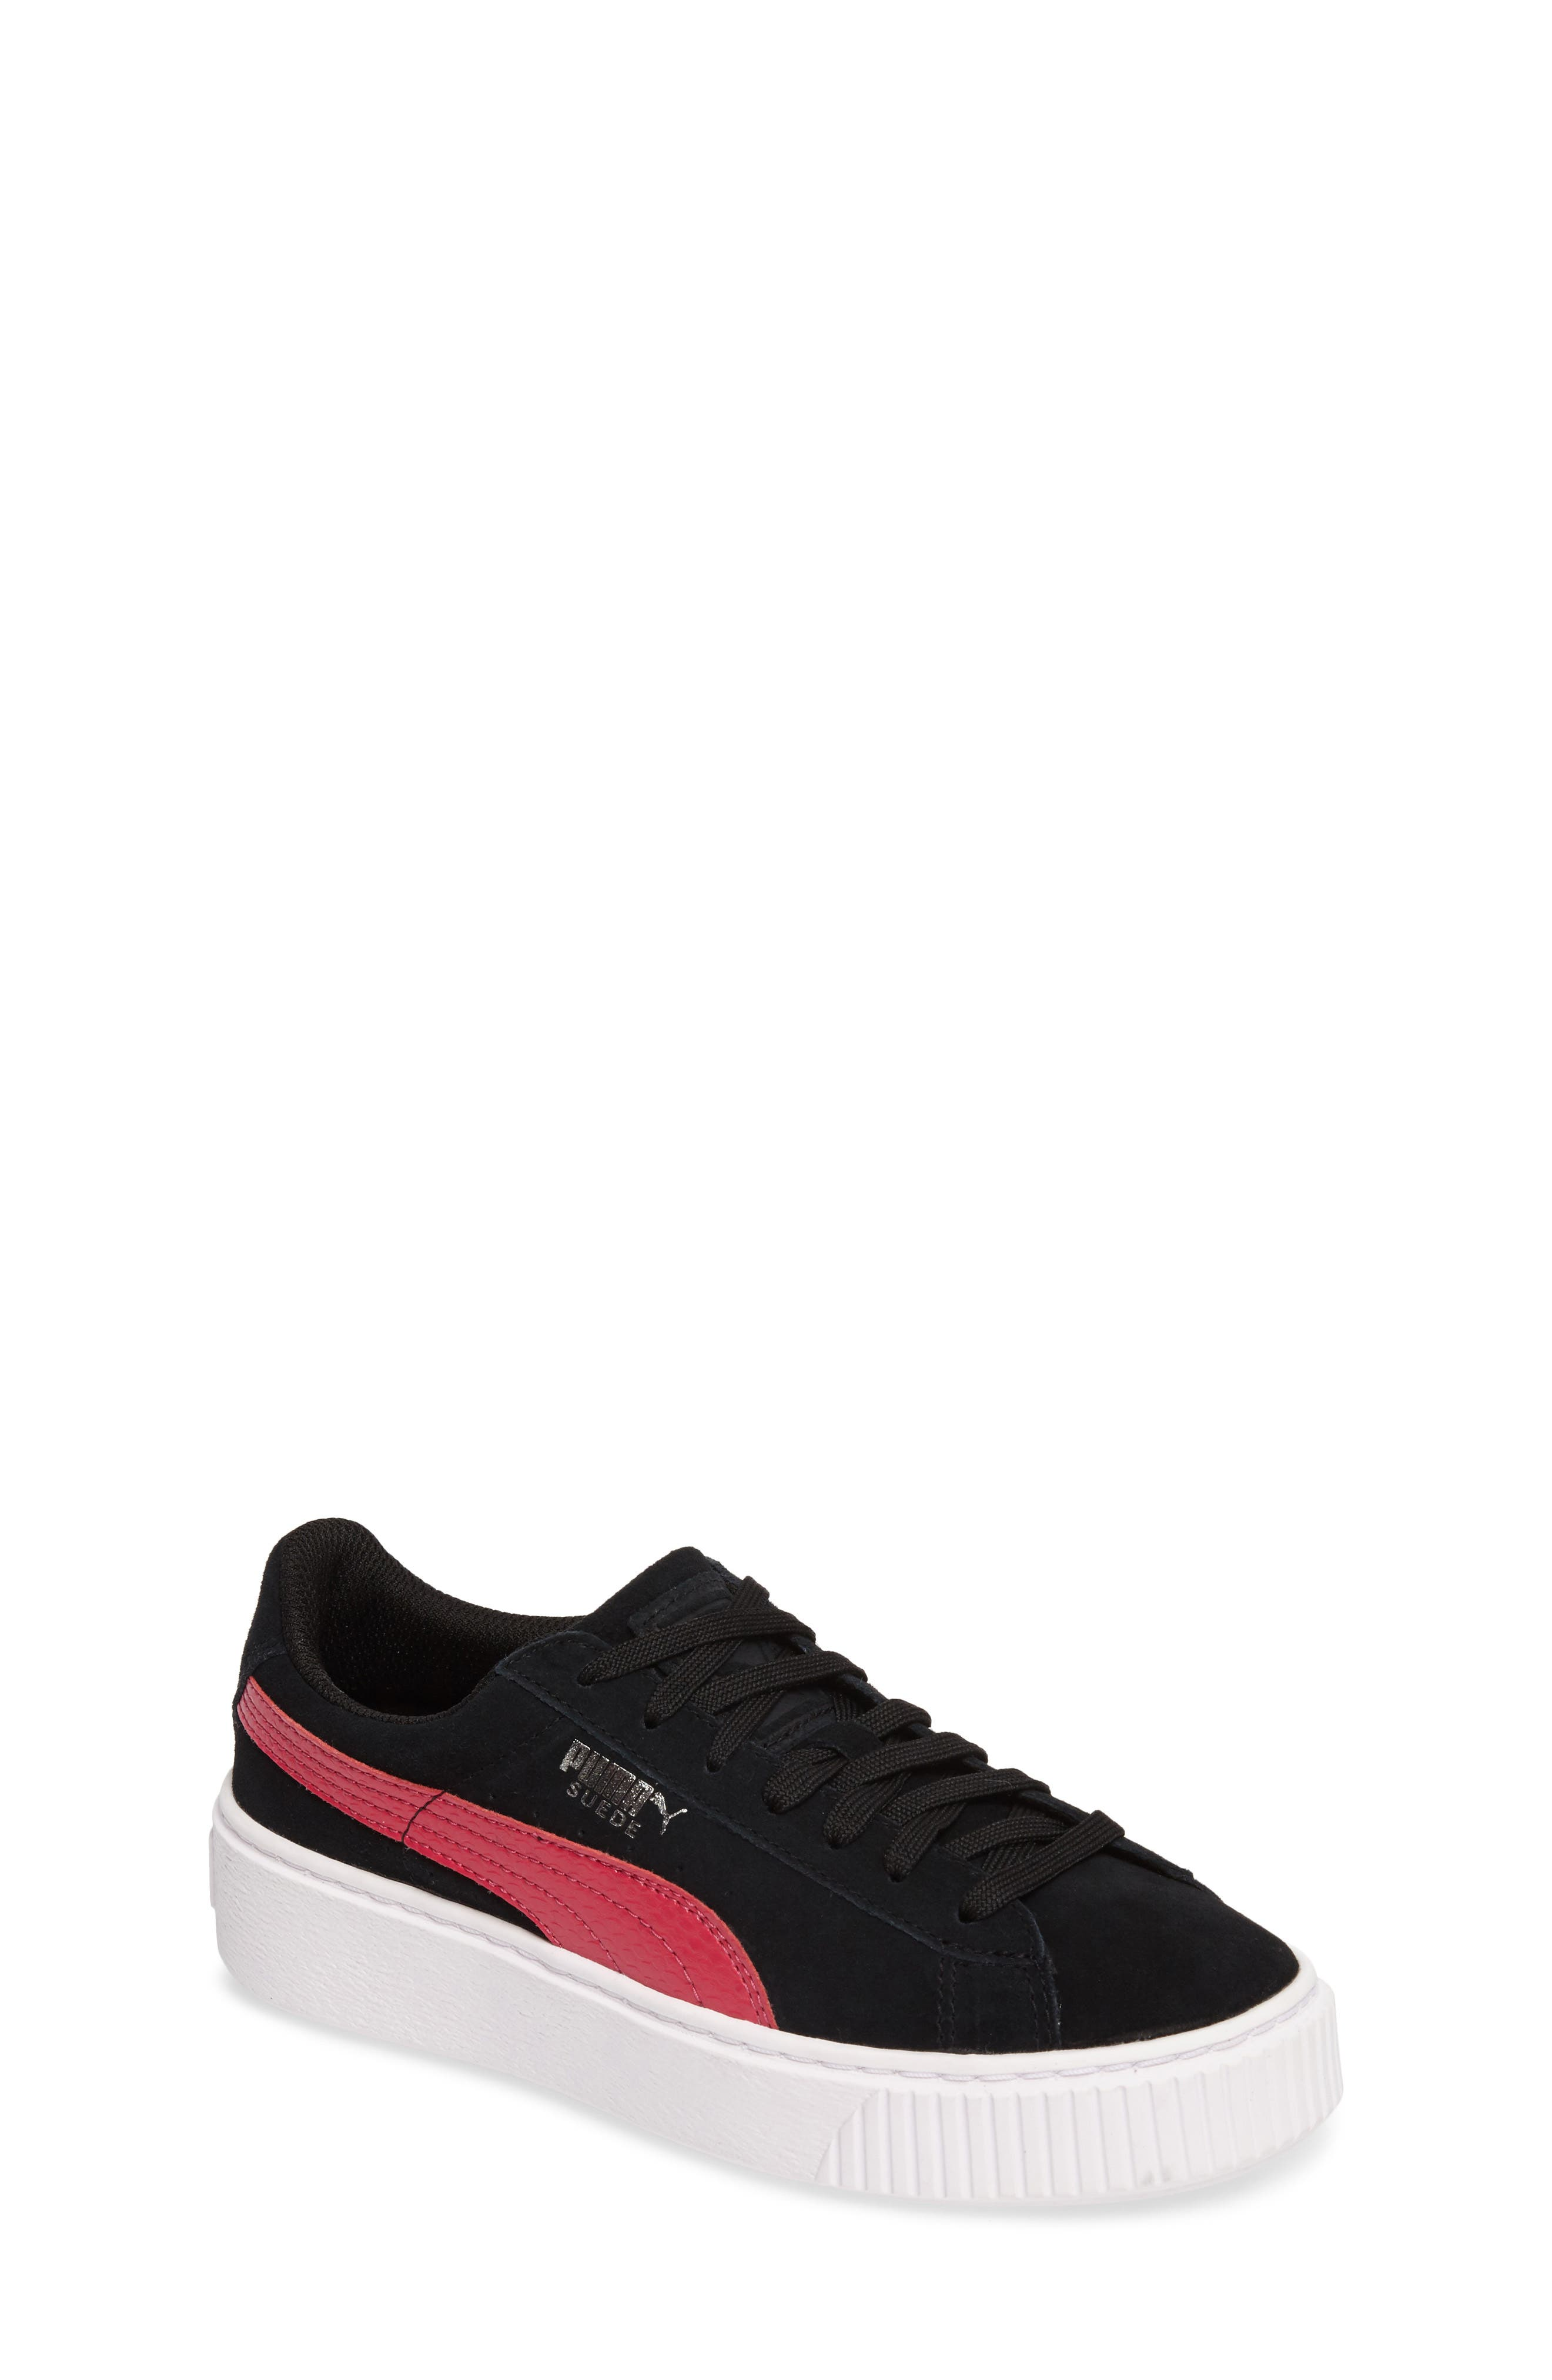 Main Image - PUMA Platform Sneaker (Big Kid)